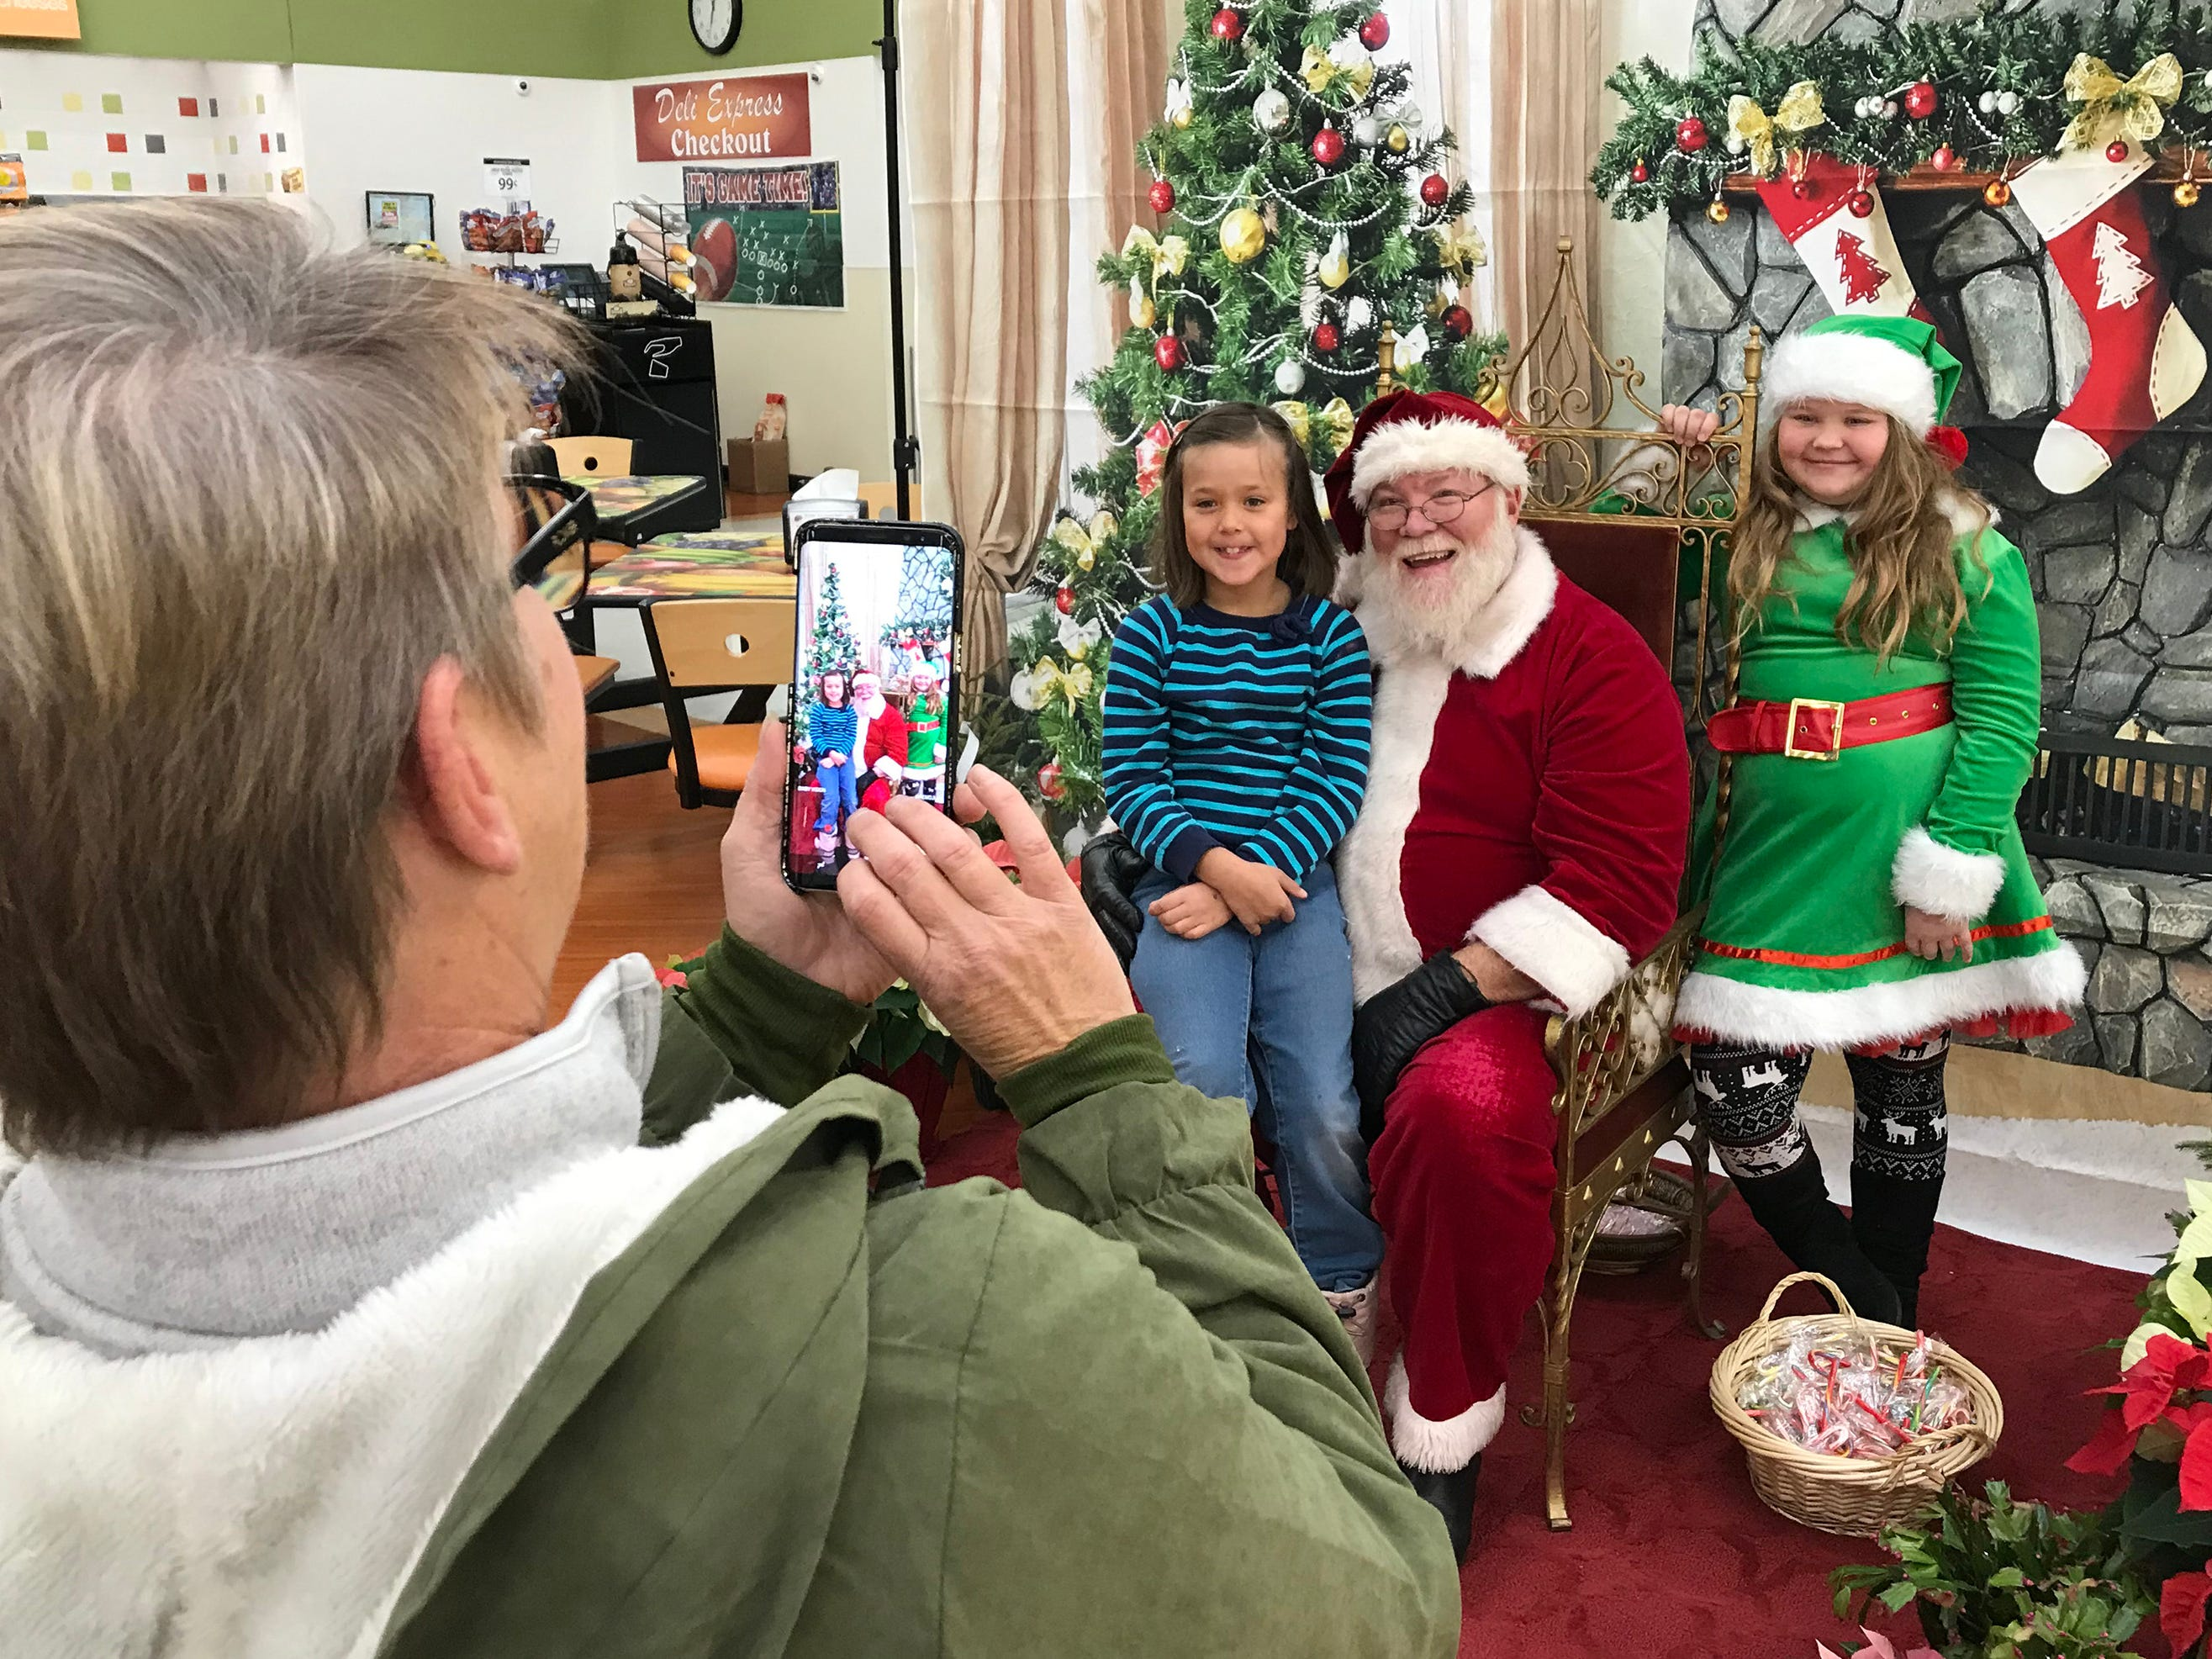 Laura Cortinaz of Plymouth, Wis, left, snaps a photo of granddaughter Emily Shelton, 8, of Plymouth with Santa Claus and his elf at Festival Foods, Saturday November 17, 2018, in Sheboygan, Wis. Santa was part of the Salvation Army's Red Kettle Campaign kickoff.